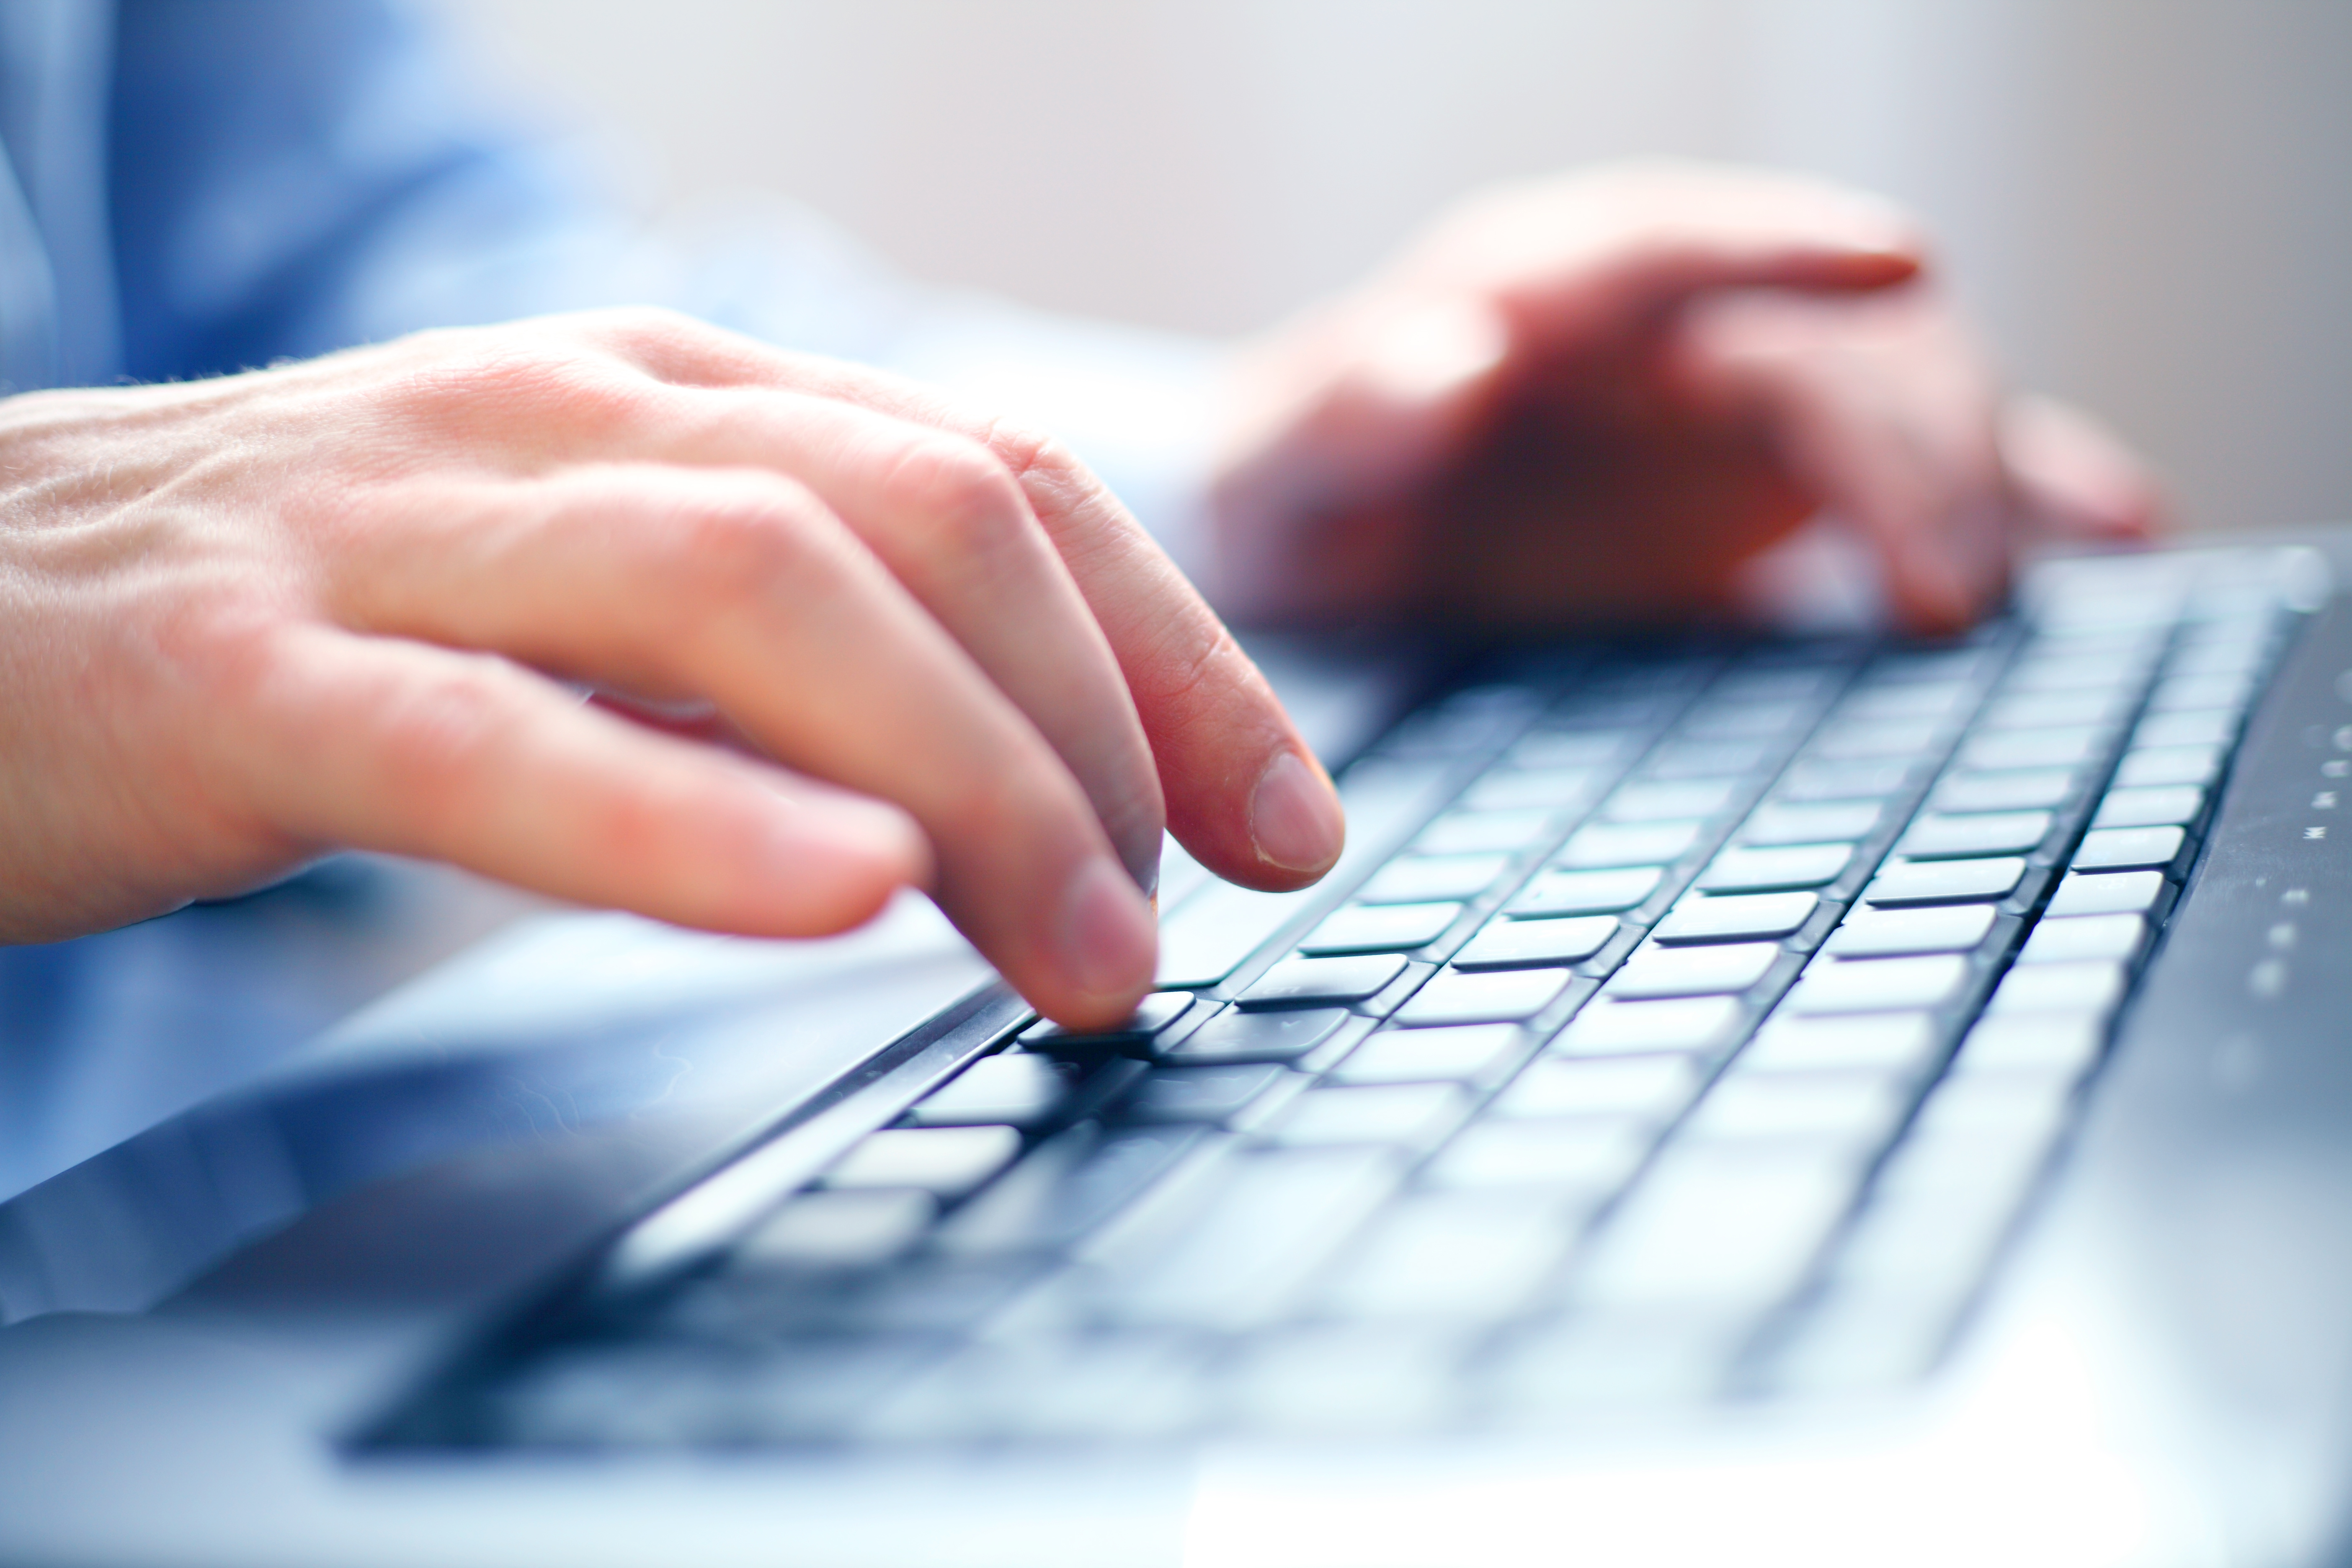 Office IT Support in Essex - Hands using keyboard